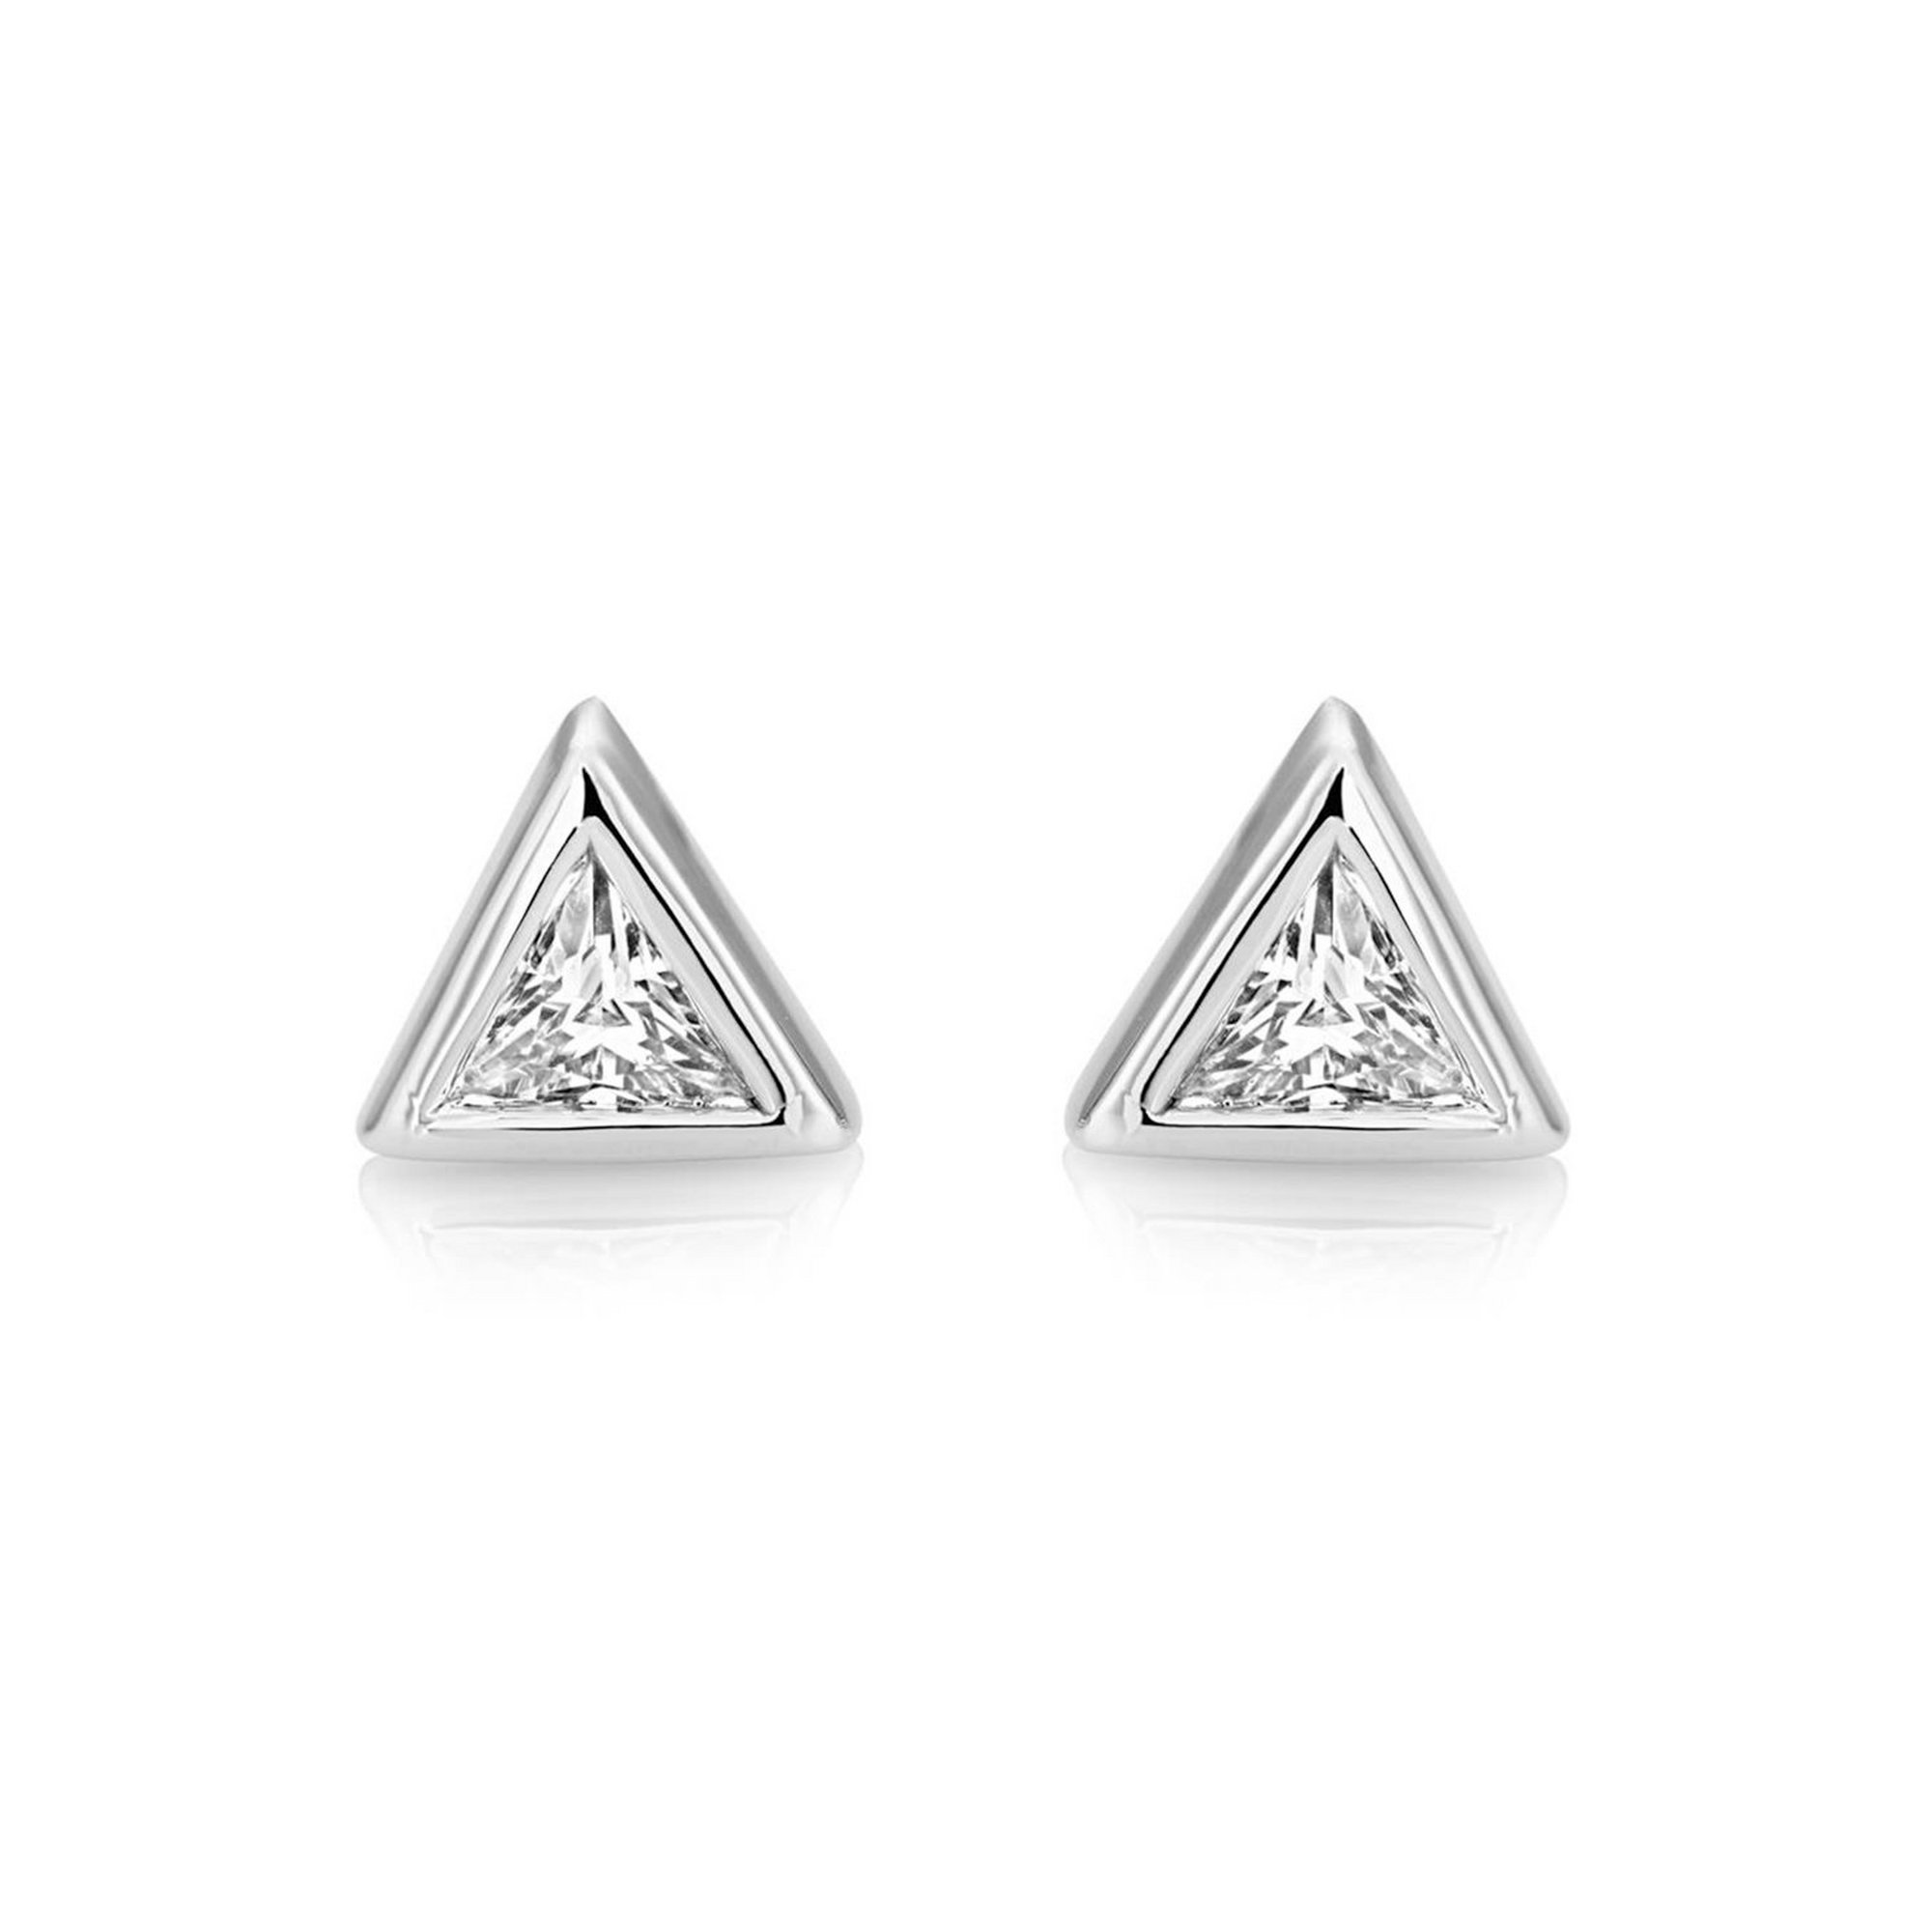 Image of Buckley London Central Trillion Stud Earrings